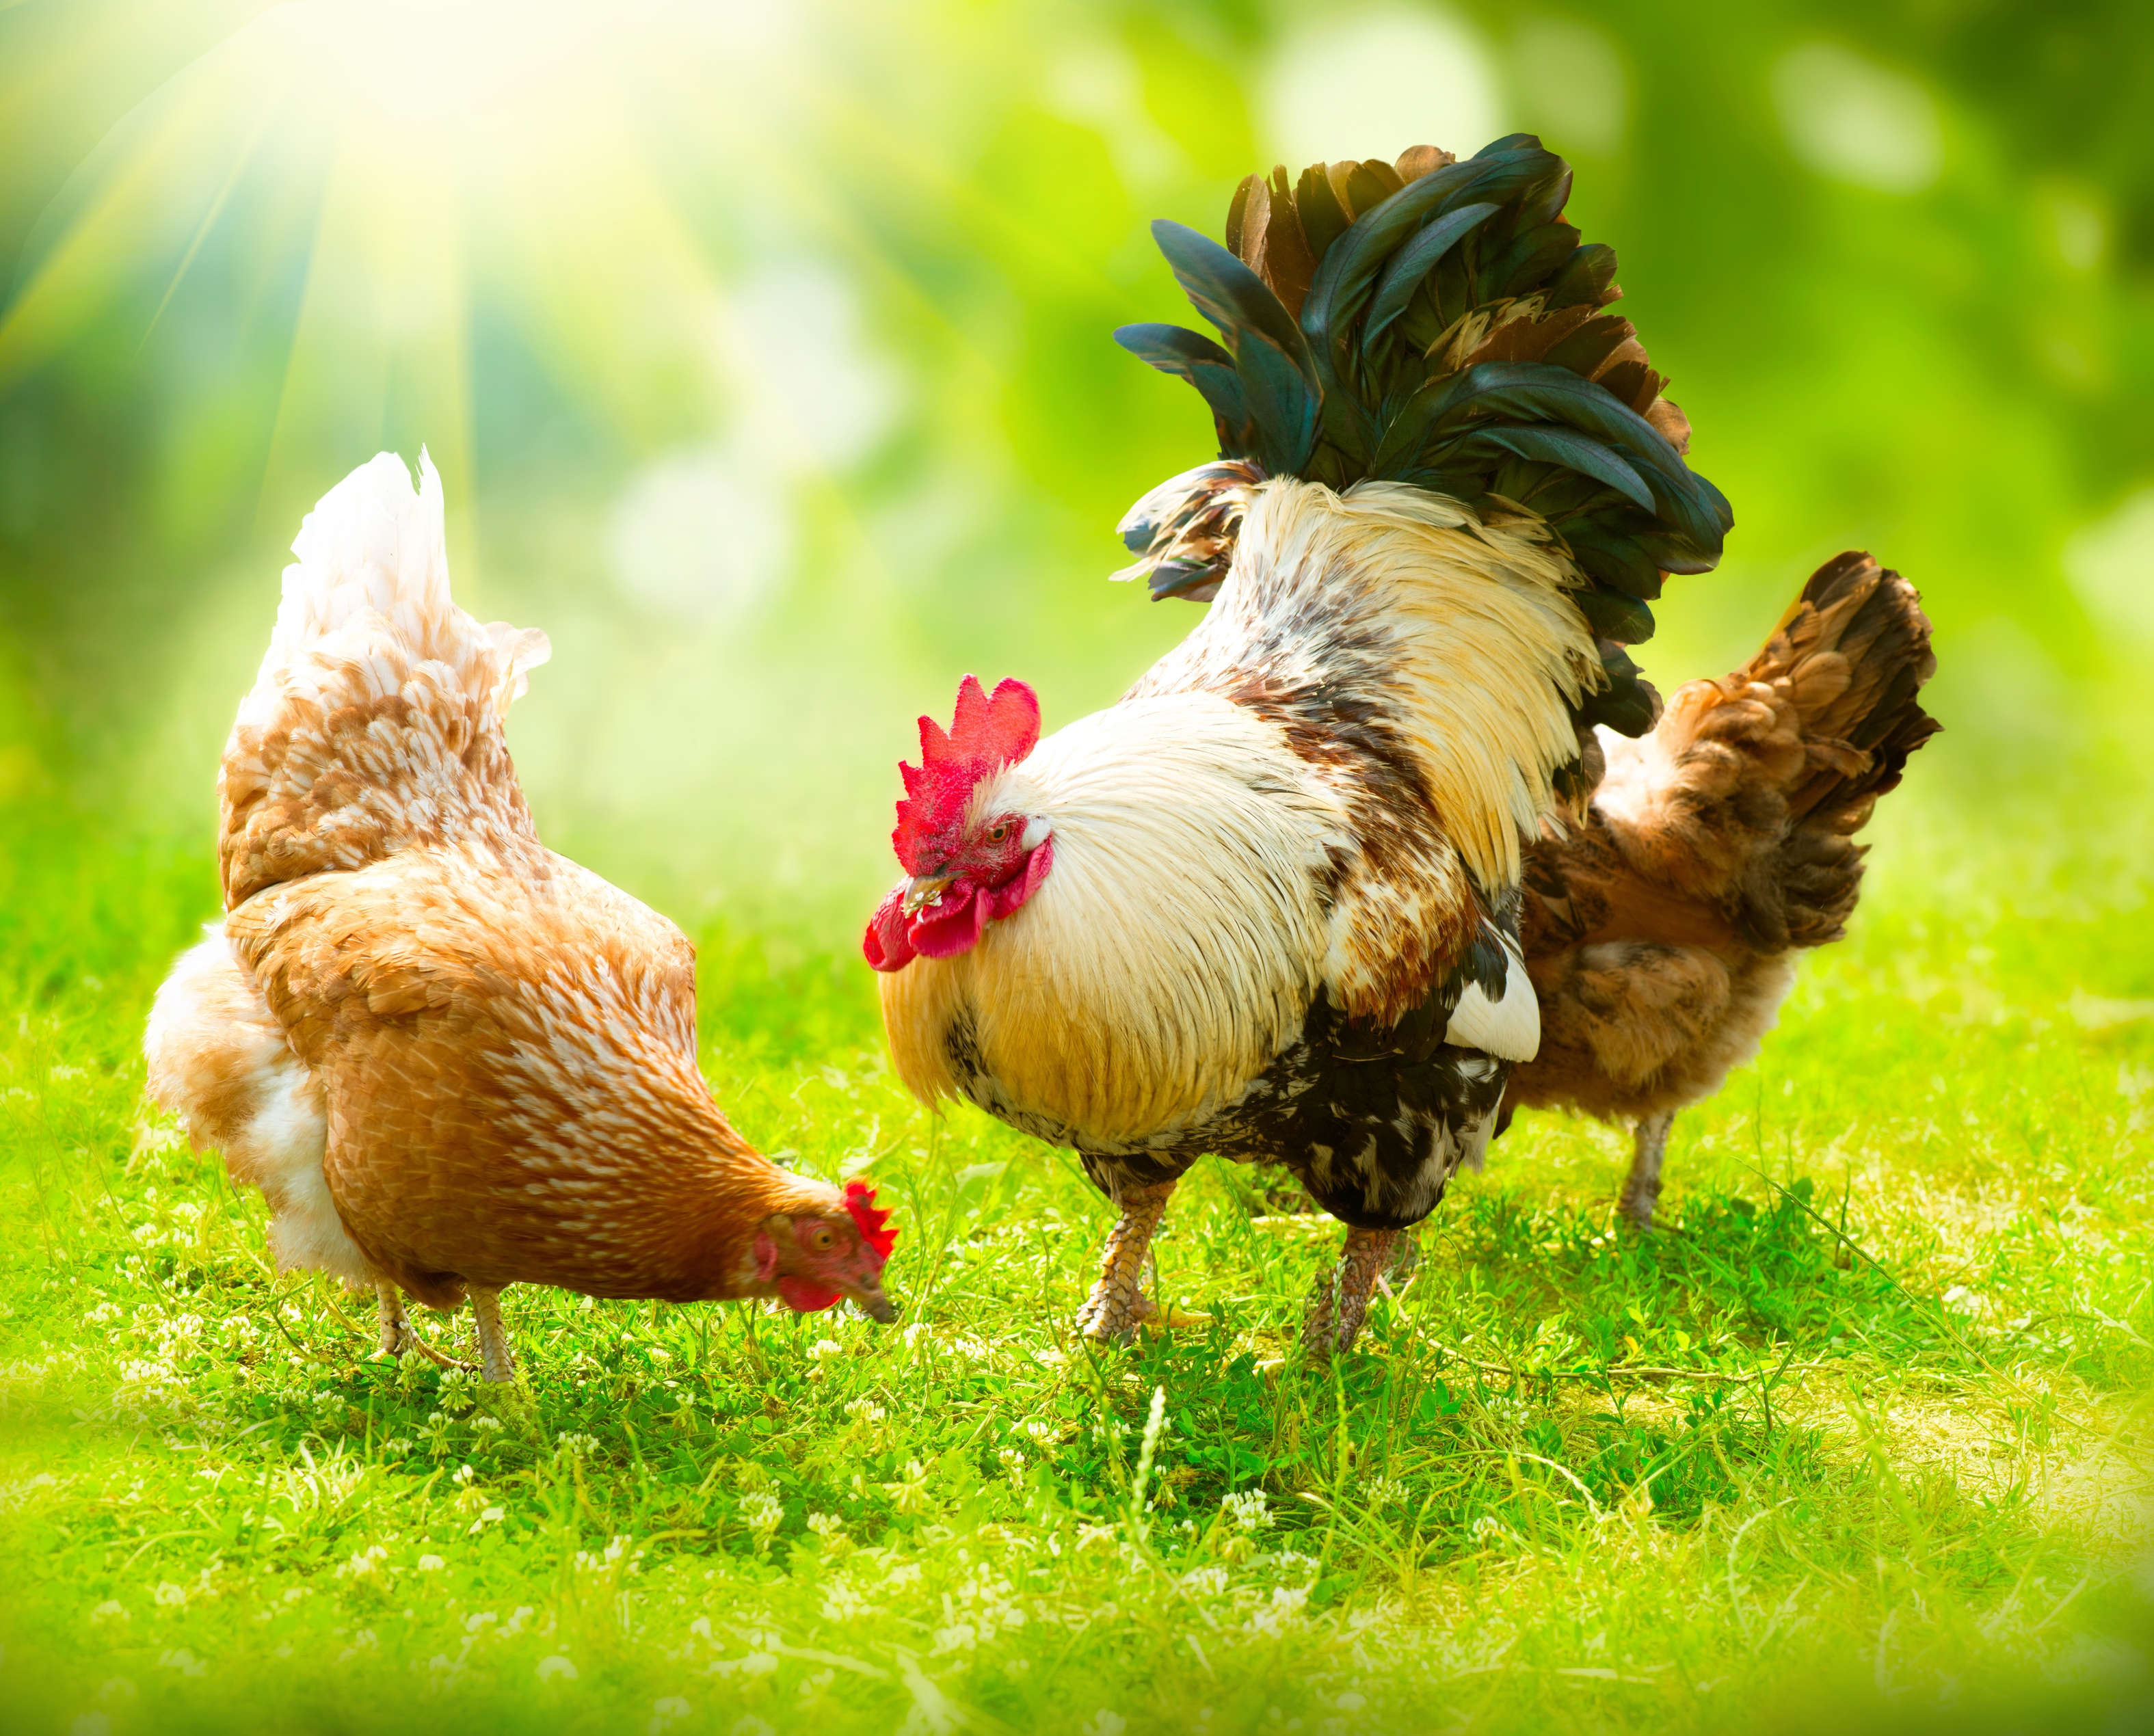 Poultry Day Days Of The Year